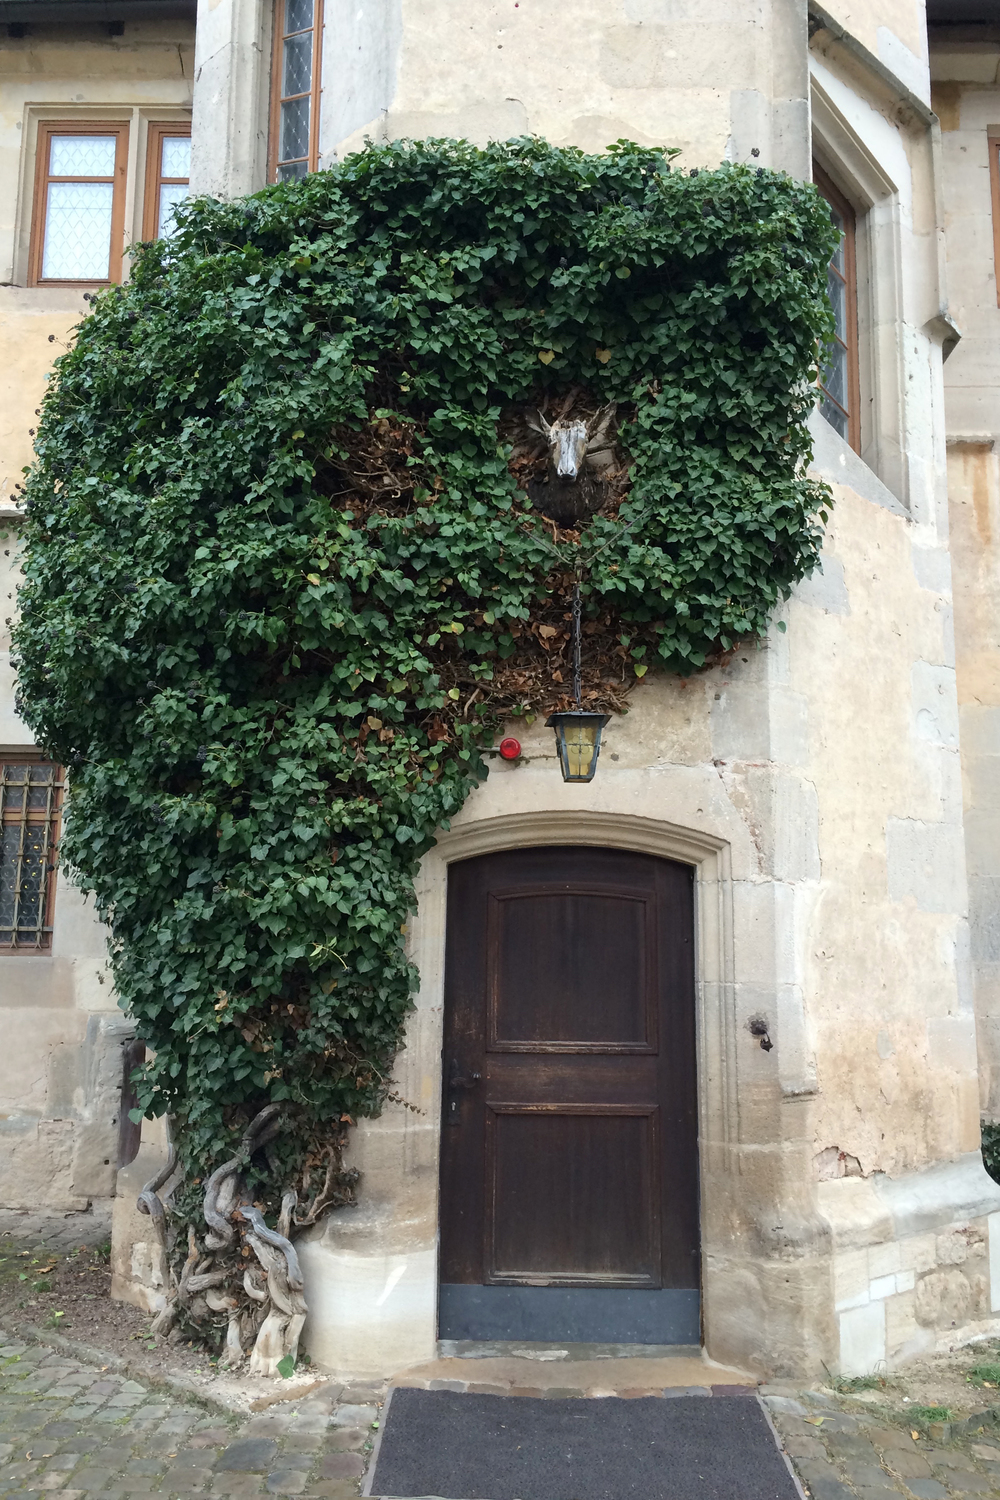 I liked these cool old vines that wrapped around some of the walls, doorways,and arches.